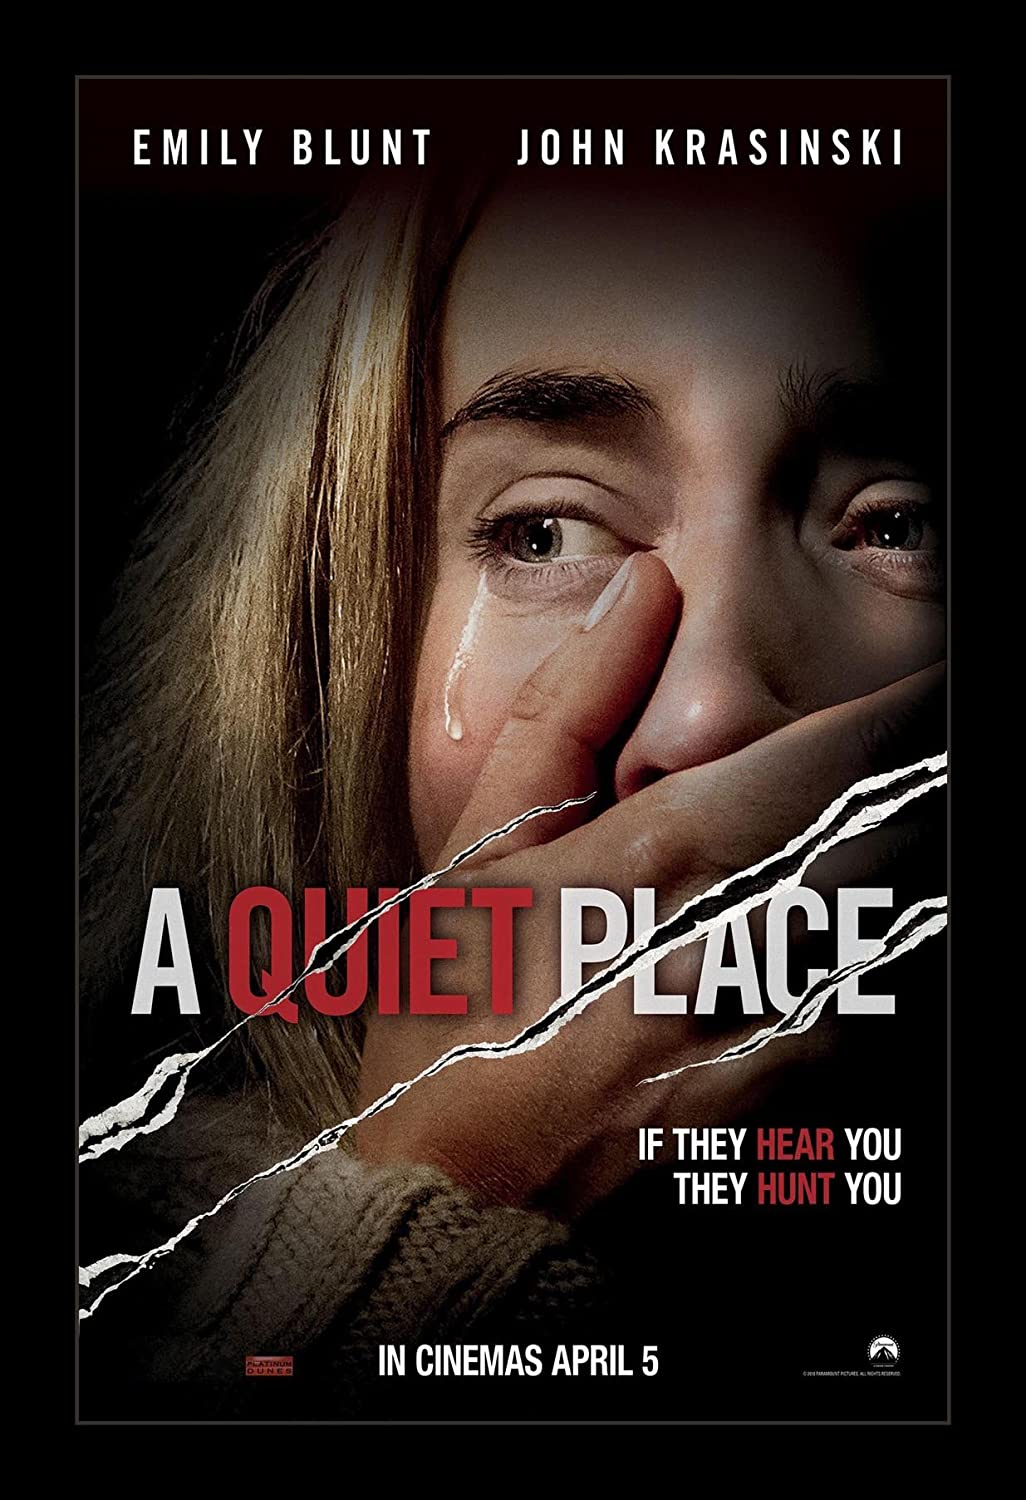 Amazon.com: Wallspace A Quiet Place - 11x17 Framed Movie Poster ...